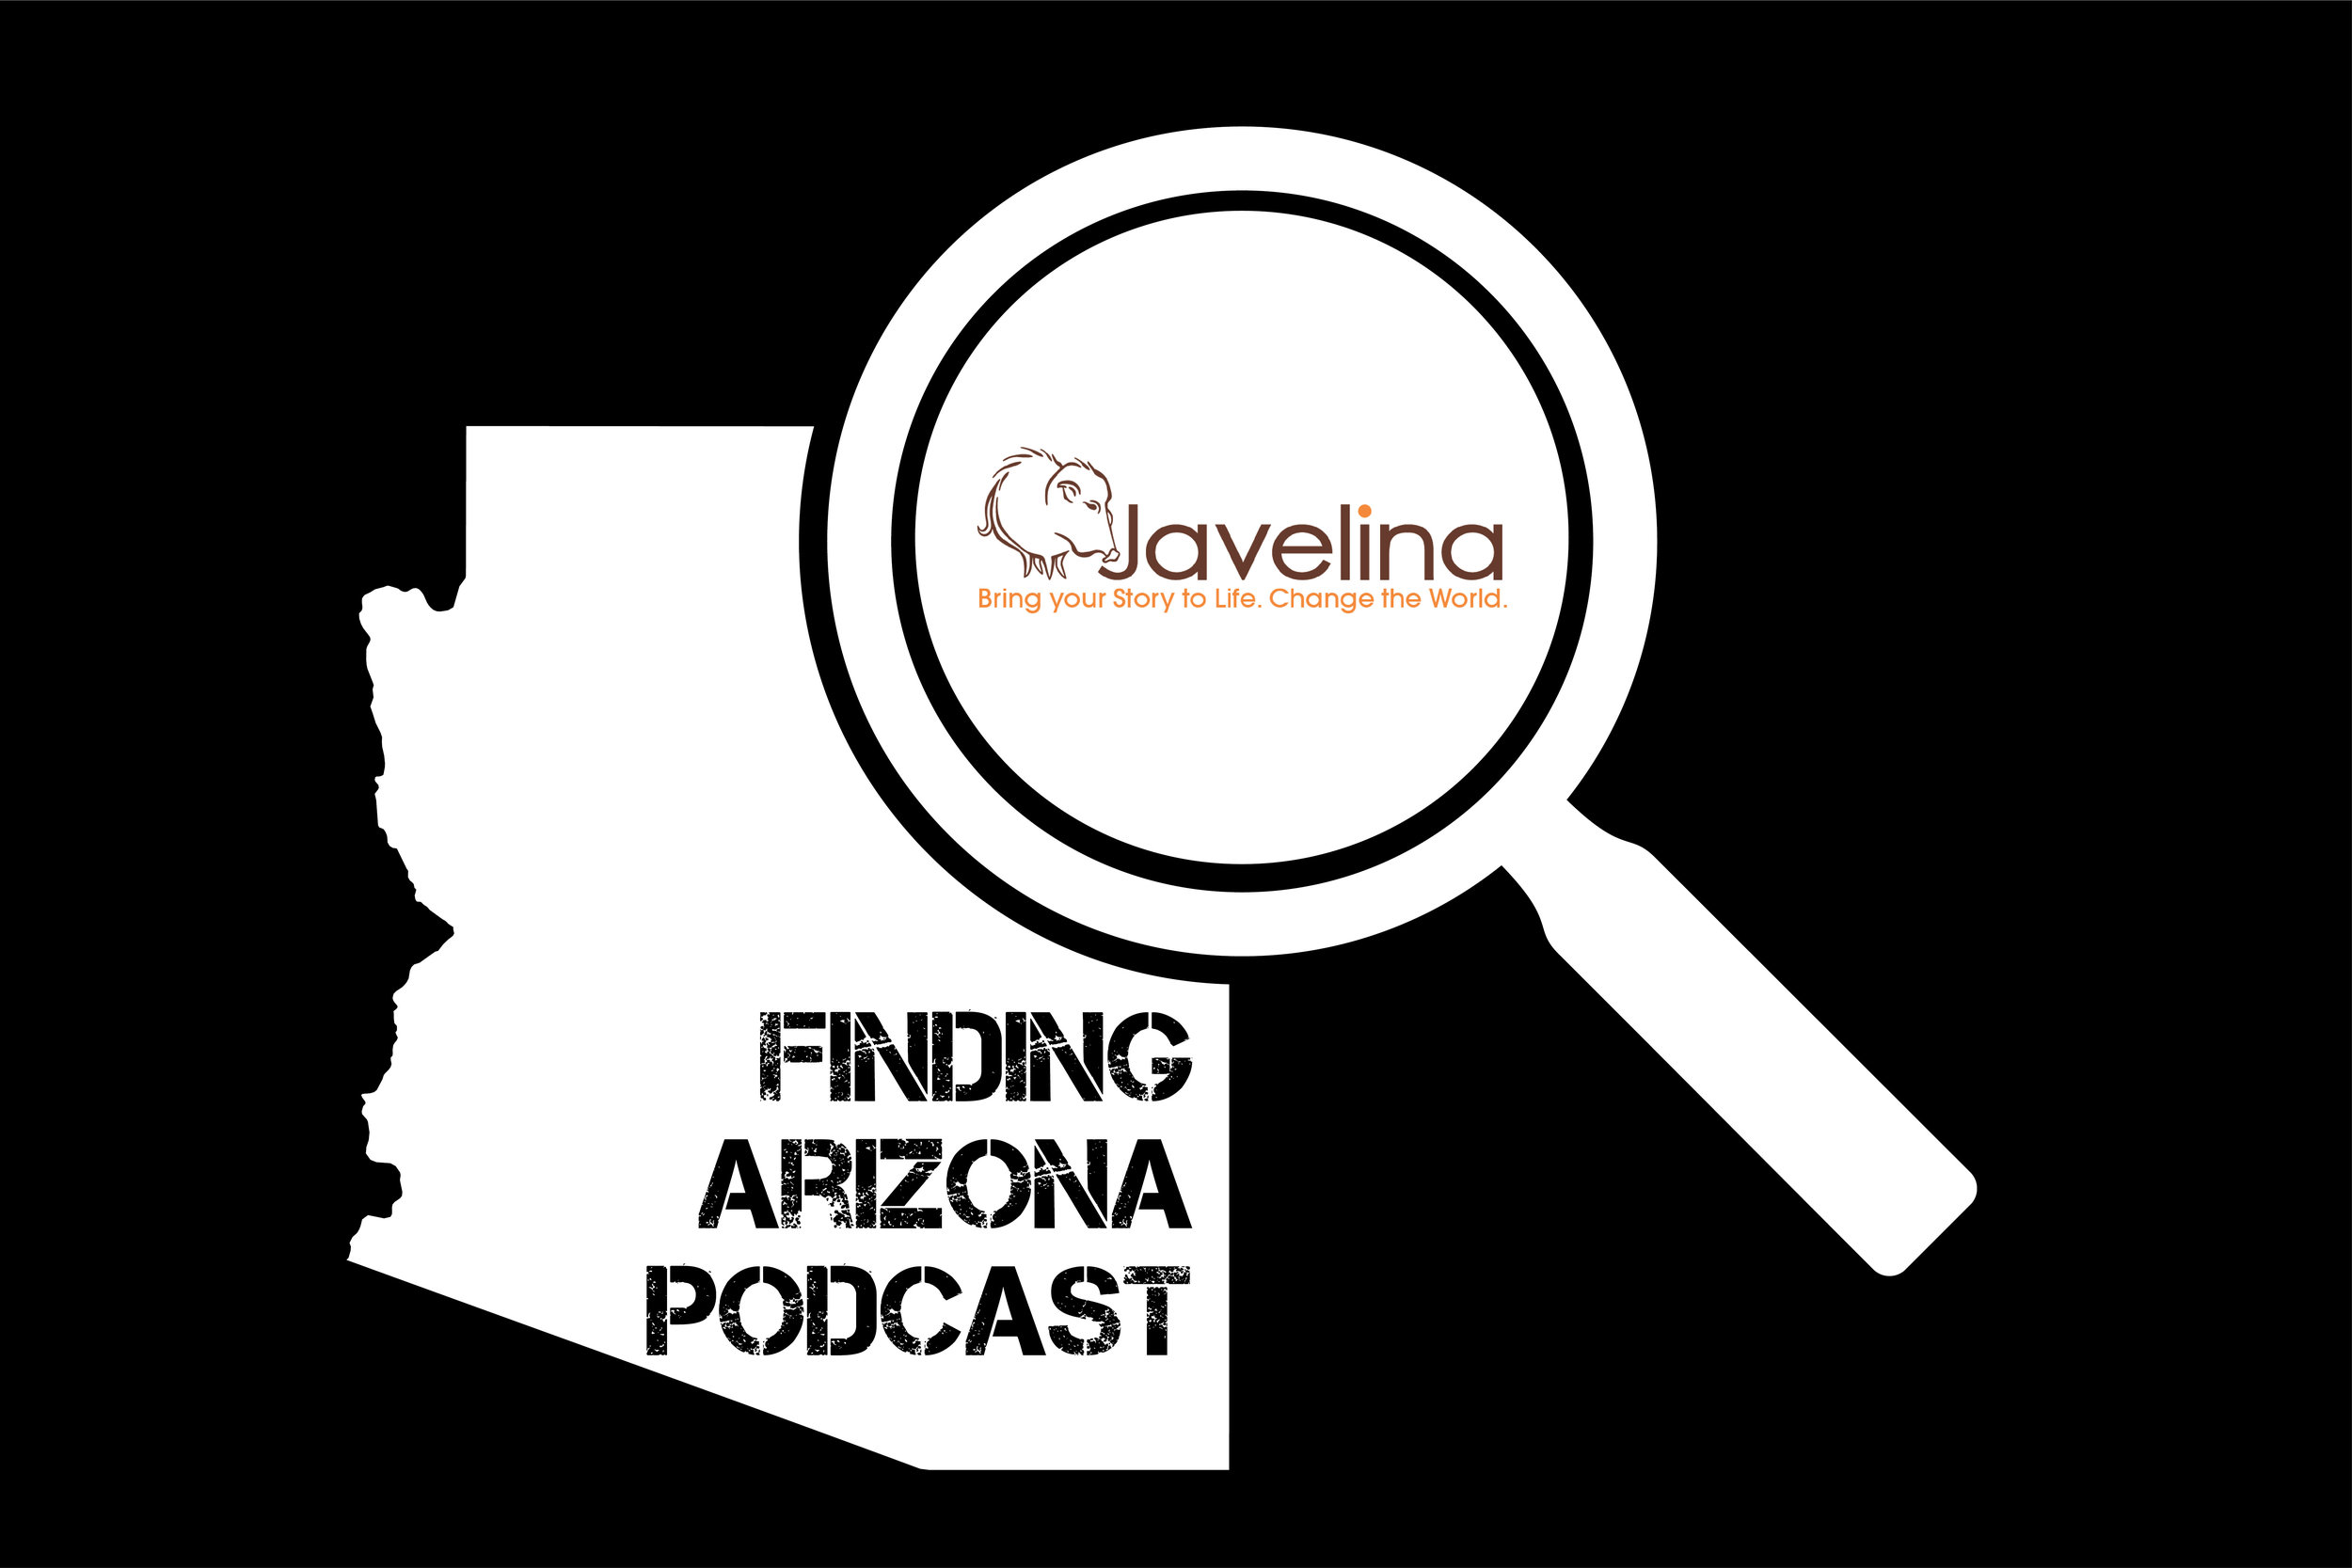 PodCastLogo-Javelina-large.jpg